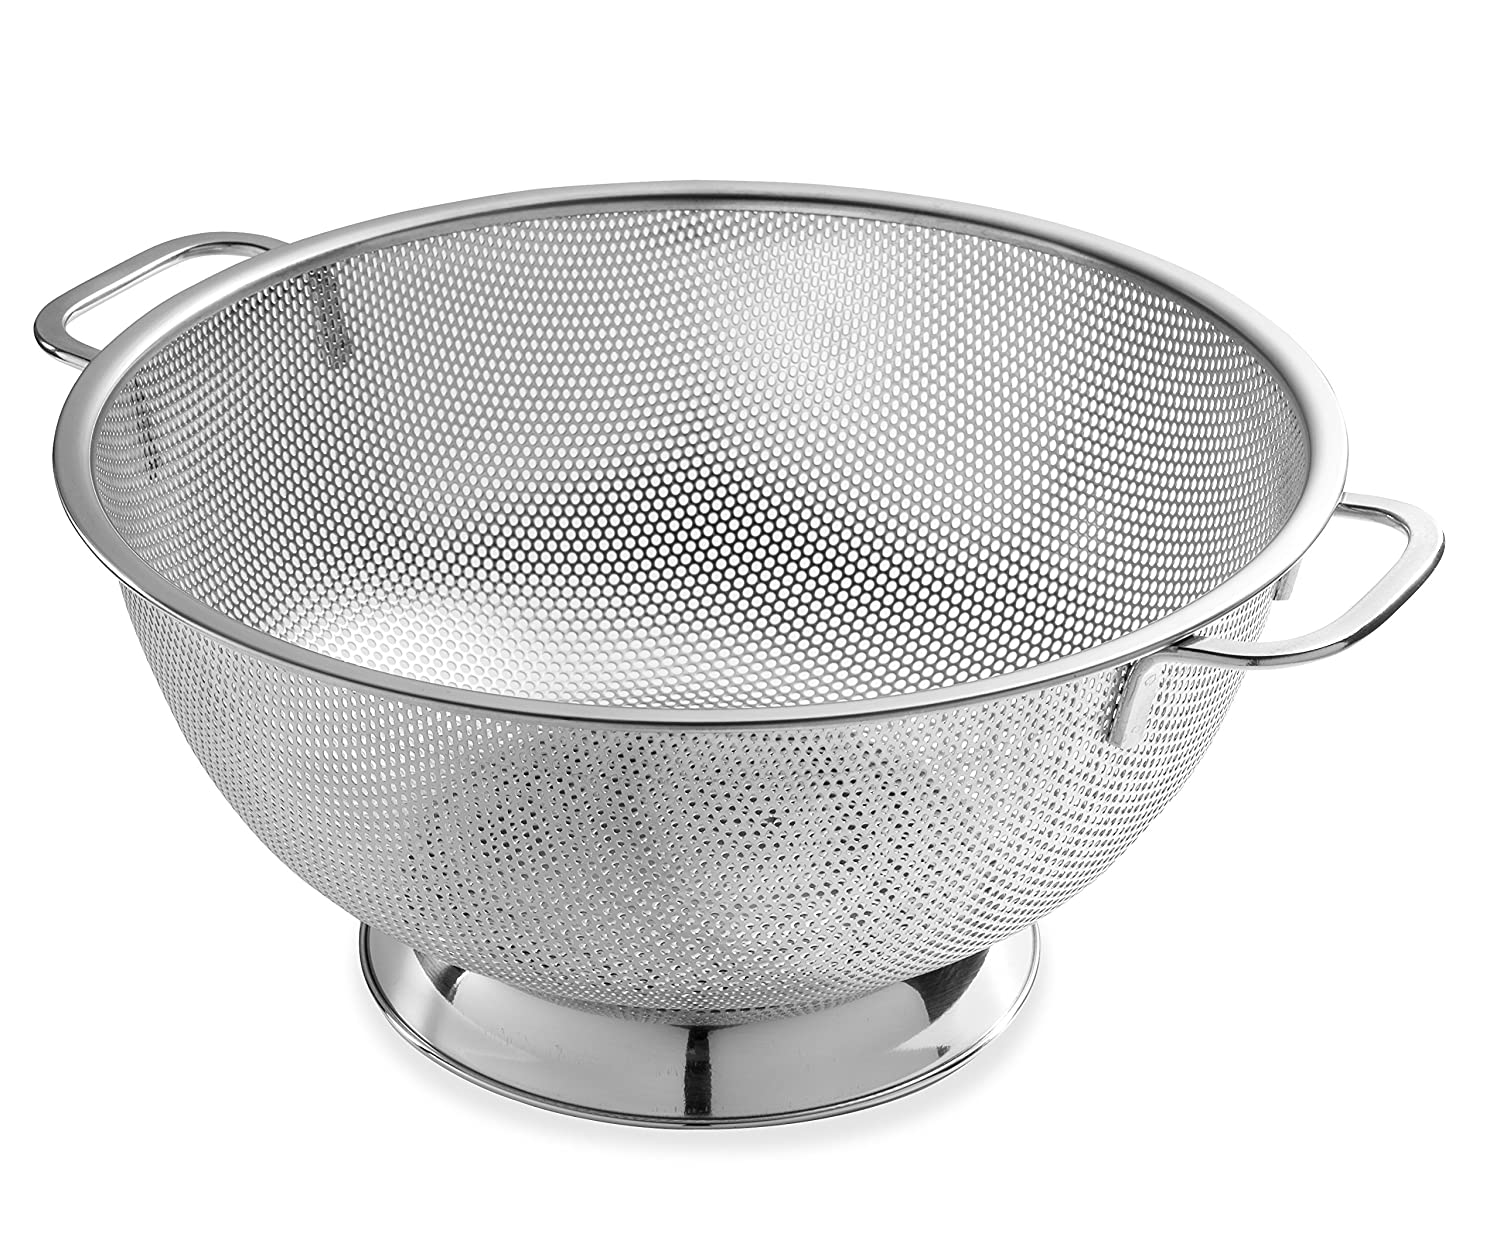 Bellemain Micro-perforated Stainless Steel 5-quart Colander-Dishwasher Safe SYNCHKG071966